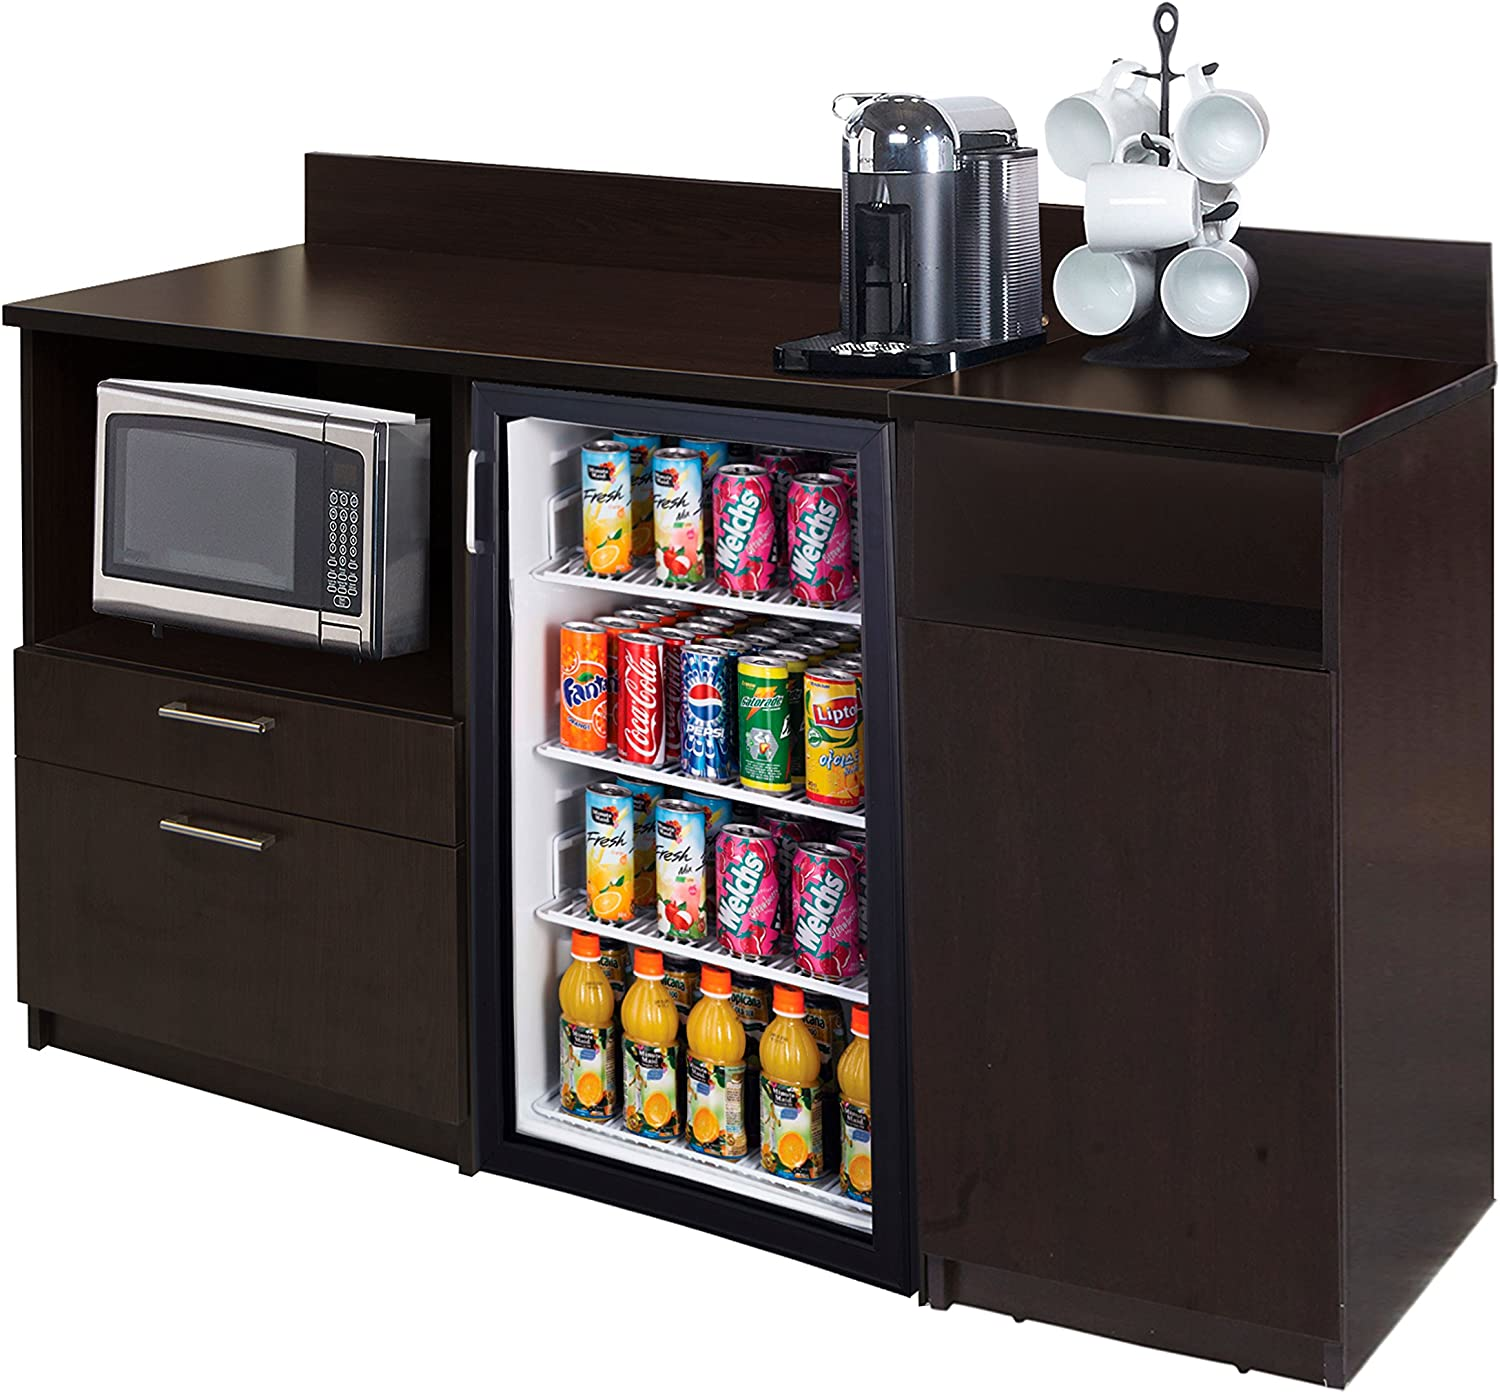 Breaktime 2 Piece 3285 Coffee Kitchen Lunch Break Room Furniture Cabinets, Fully Assembled, Ready to Use, Espresso